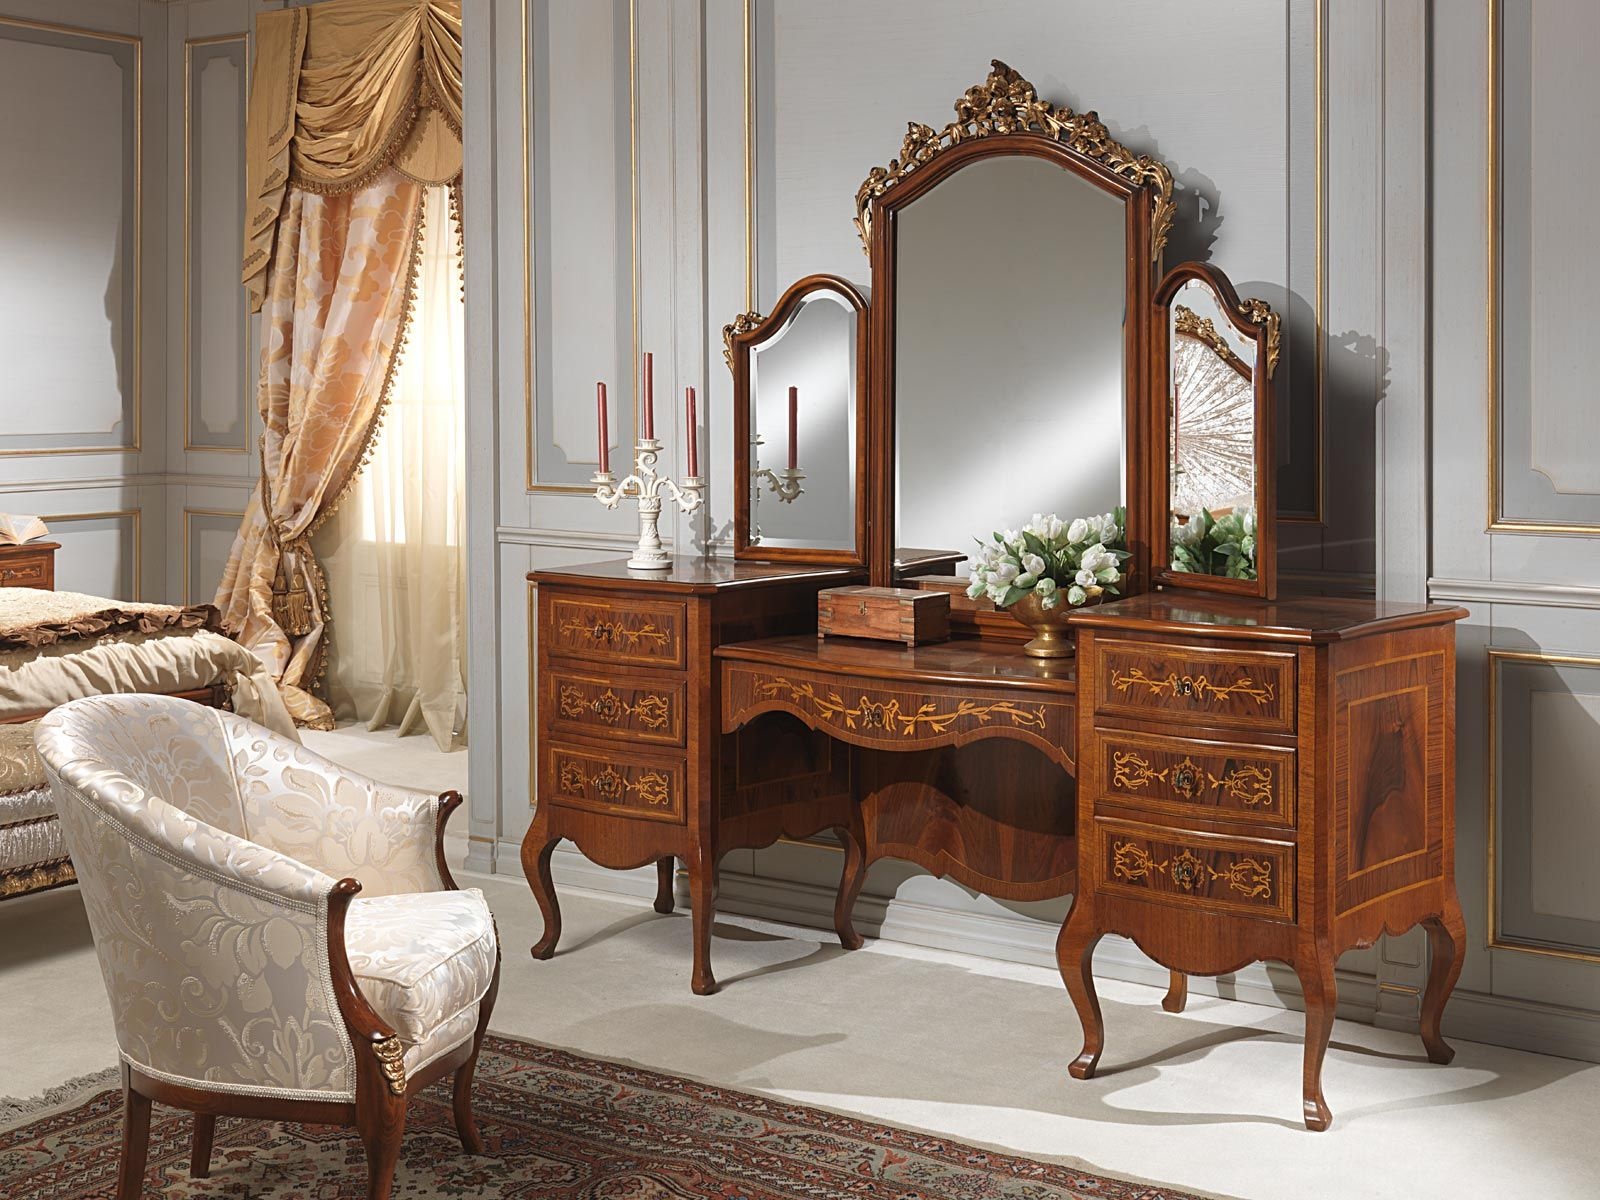 Big Dressing Table In Walnut Wood With Inlays And Antique